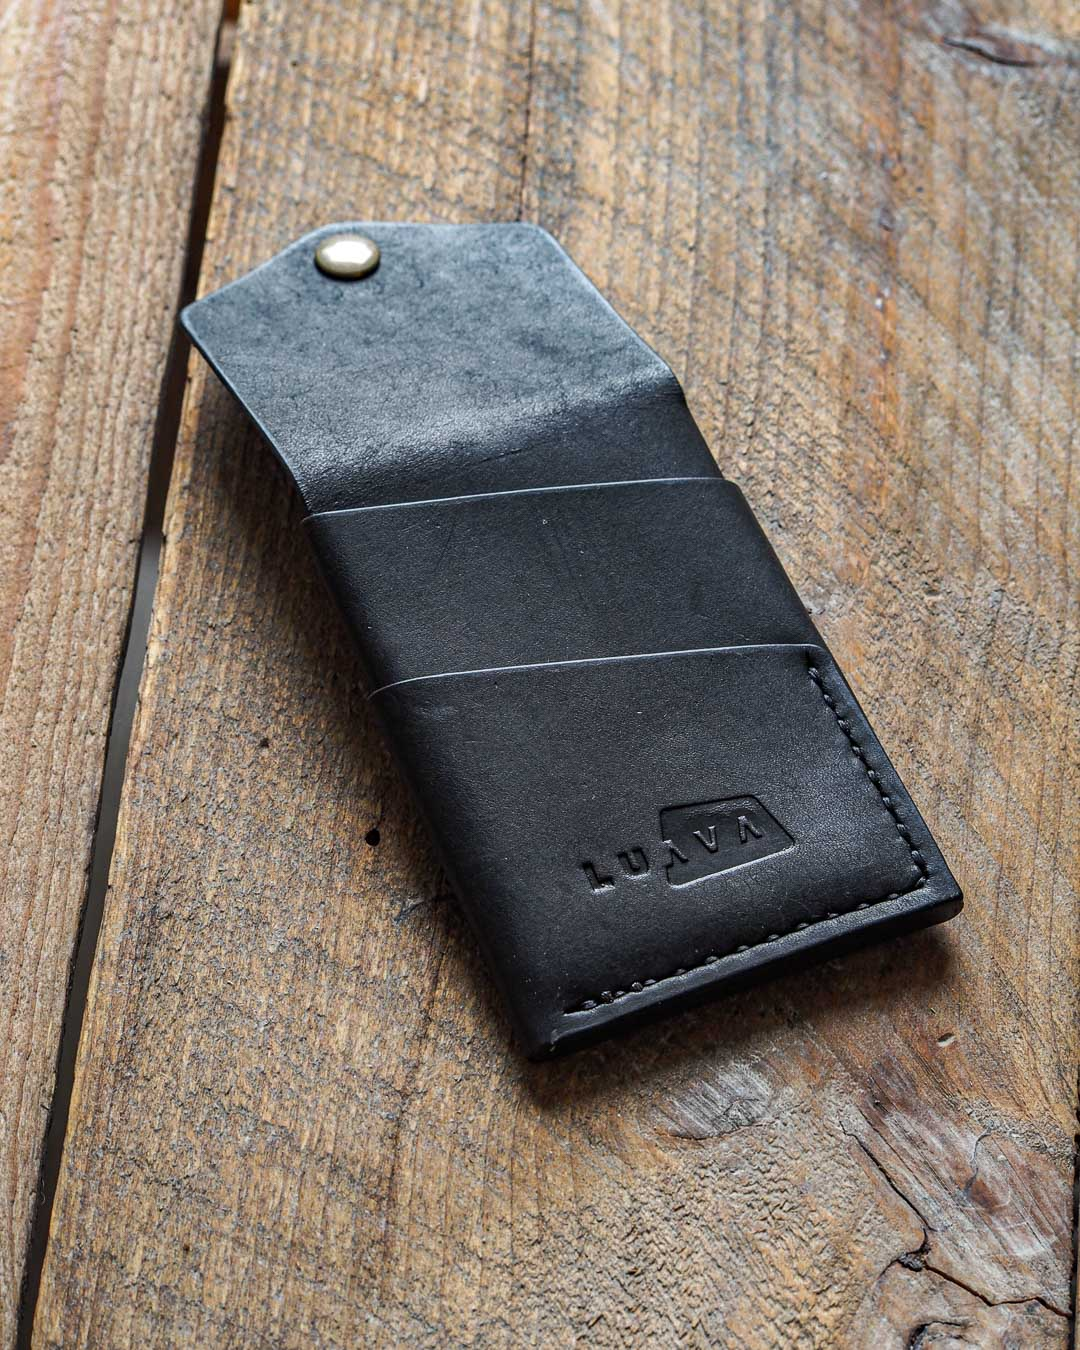 Luava handmade leather wallet handcrafted card holder cardholder made in finland overfold pueblo black back open angle